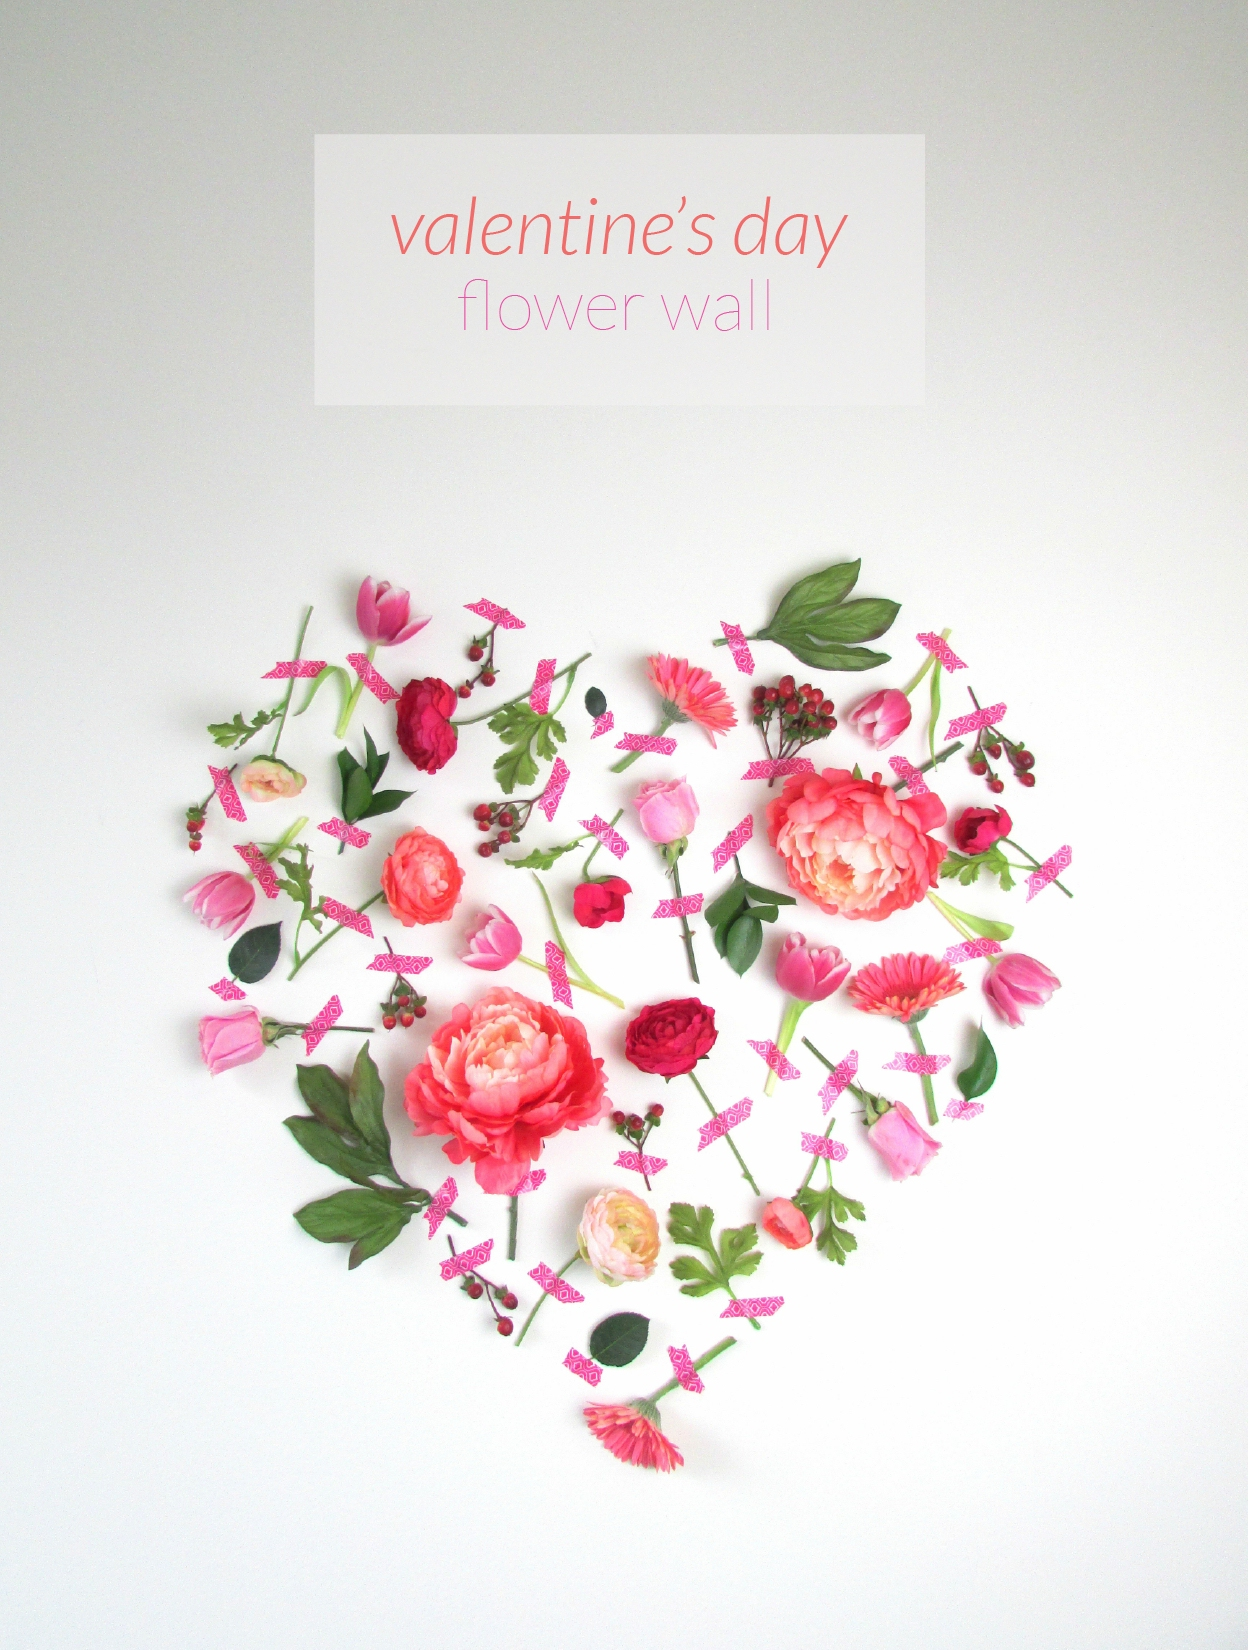 Valentines day flower wall art amipublicfo Choice Image